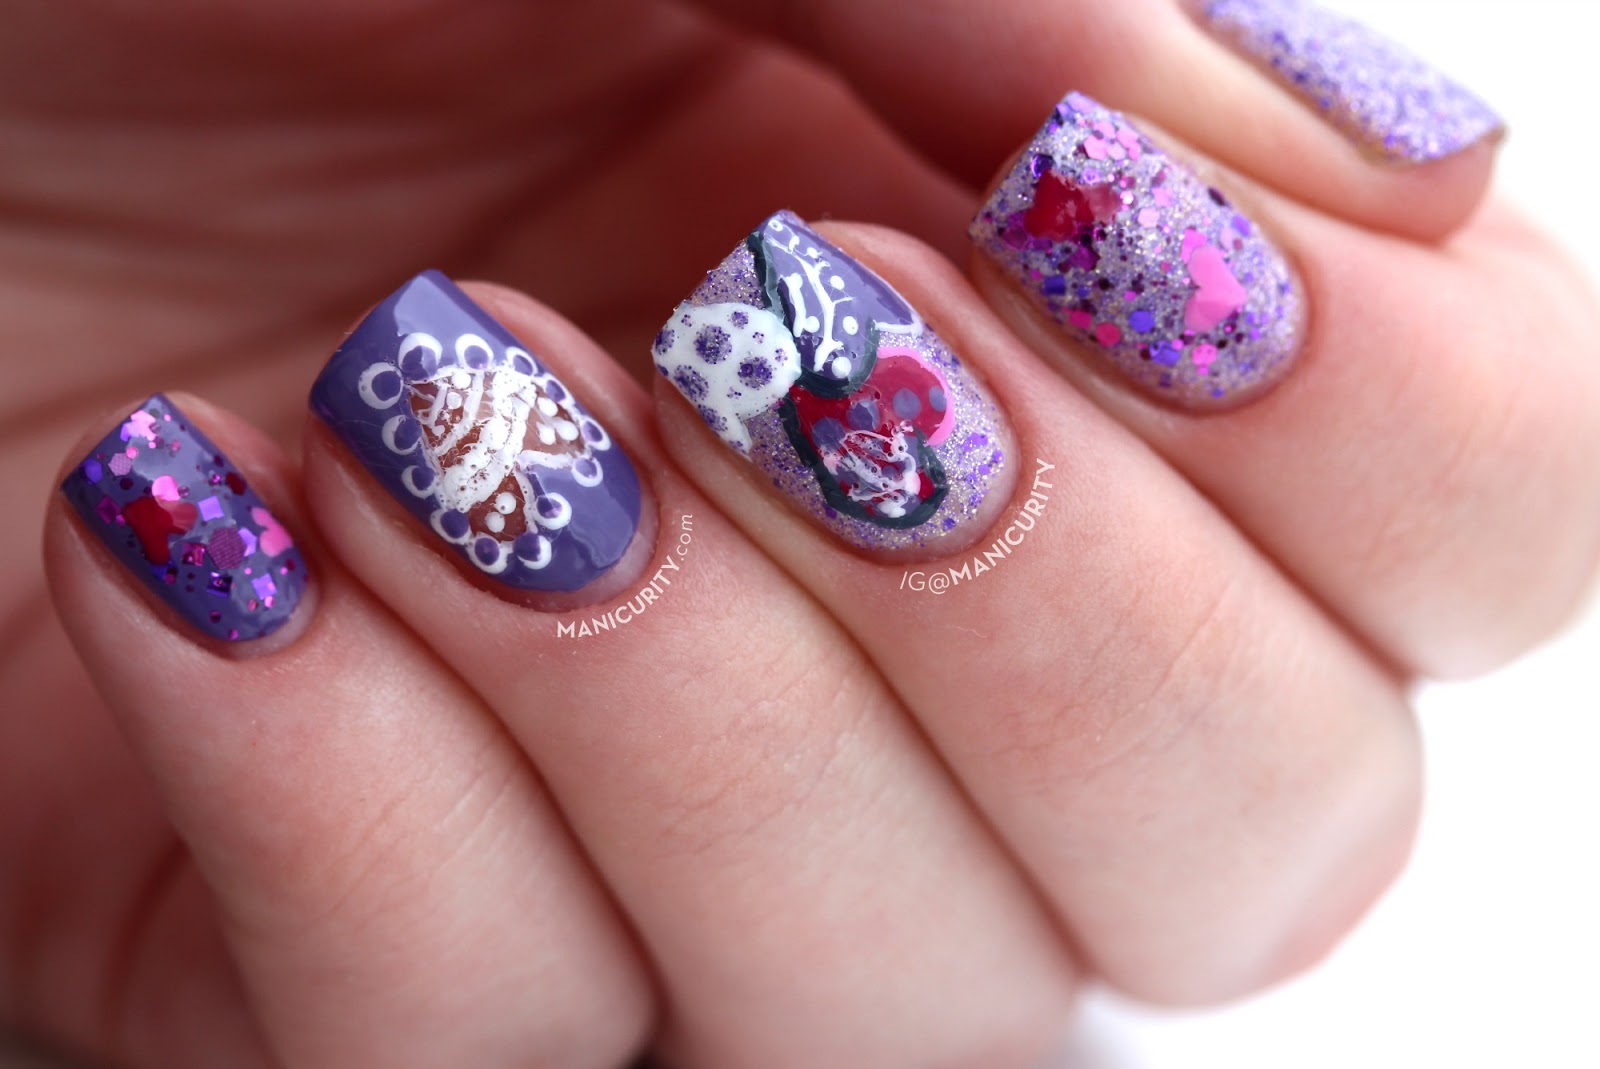 The Digit-al Dozen: Sugared Violet Lace Valentine - super cute, girly, and glittery Valentine's Day nail art for short nails | Manicurity.com